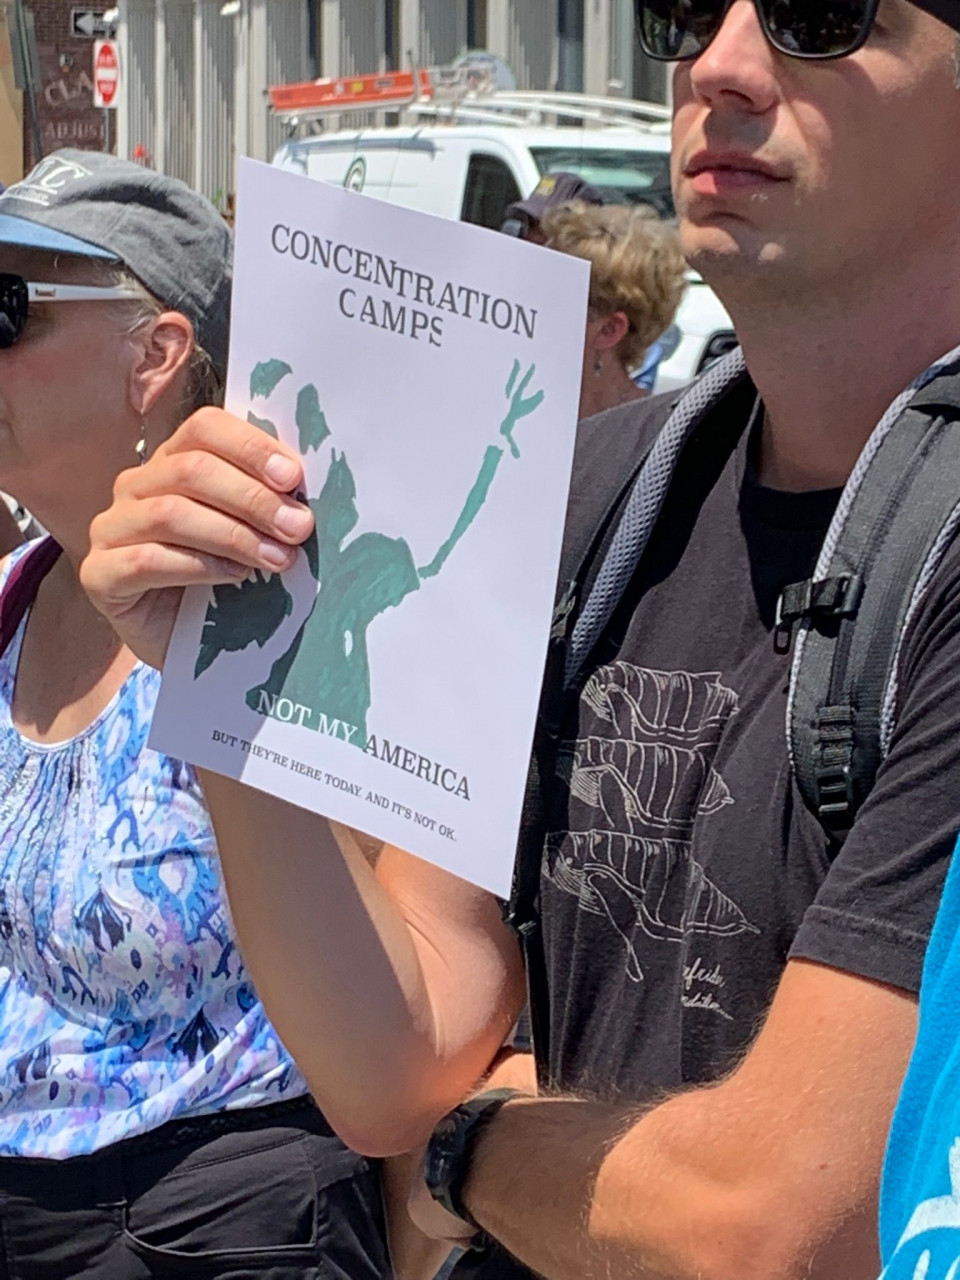 """<a class=""""bx-tag"""" rel=""""tag"""" href=""""https://wethepeople.care/page/view-channel-profile?id=1073""""><s>#</s><b>closethecamps</b></a> - Concentration Camps...Not in My America"""